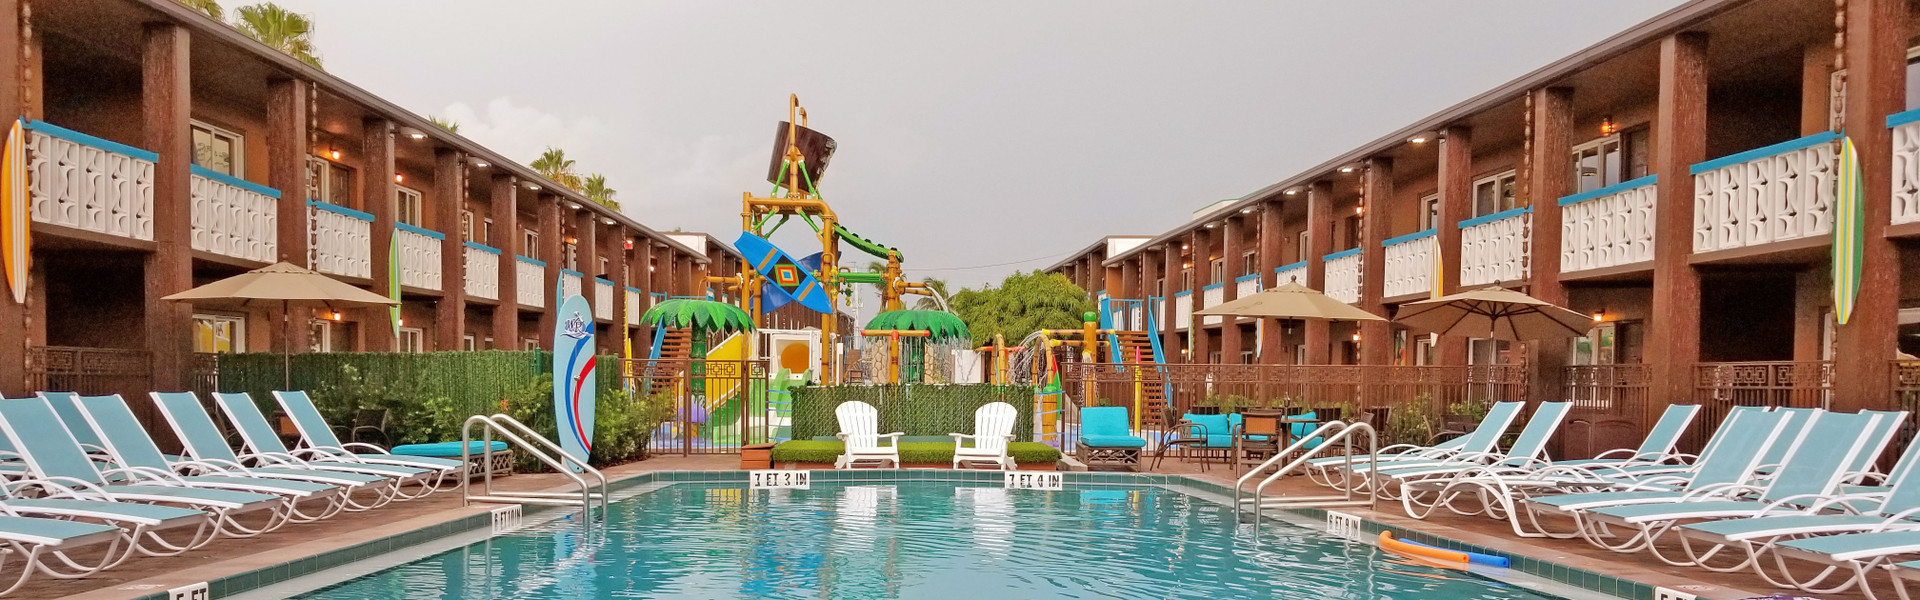 The Best Hotel Pool Cocoa Beach | Westgate Cocoa Beach Resort | Cocoa Beach Hotels With Pool